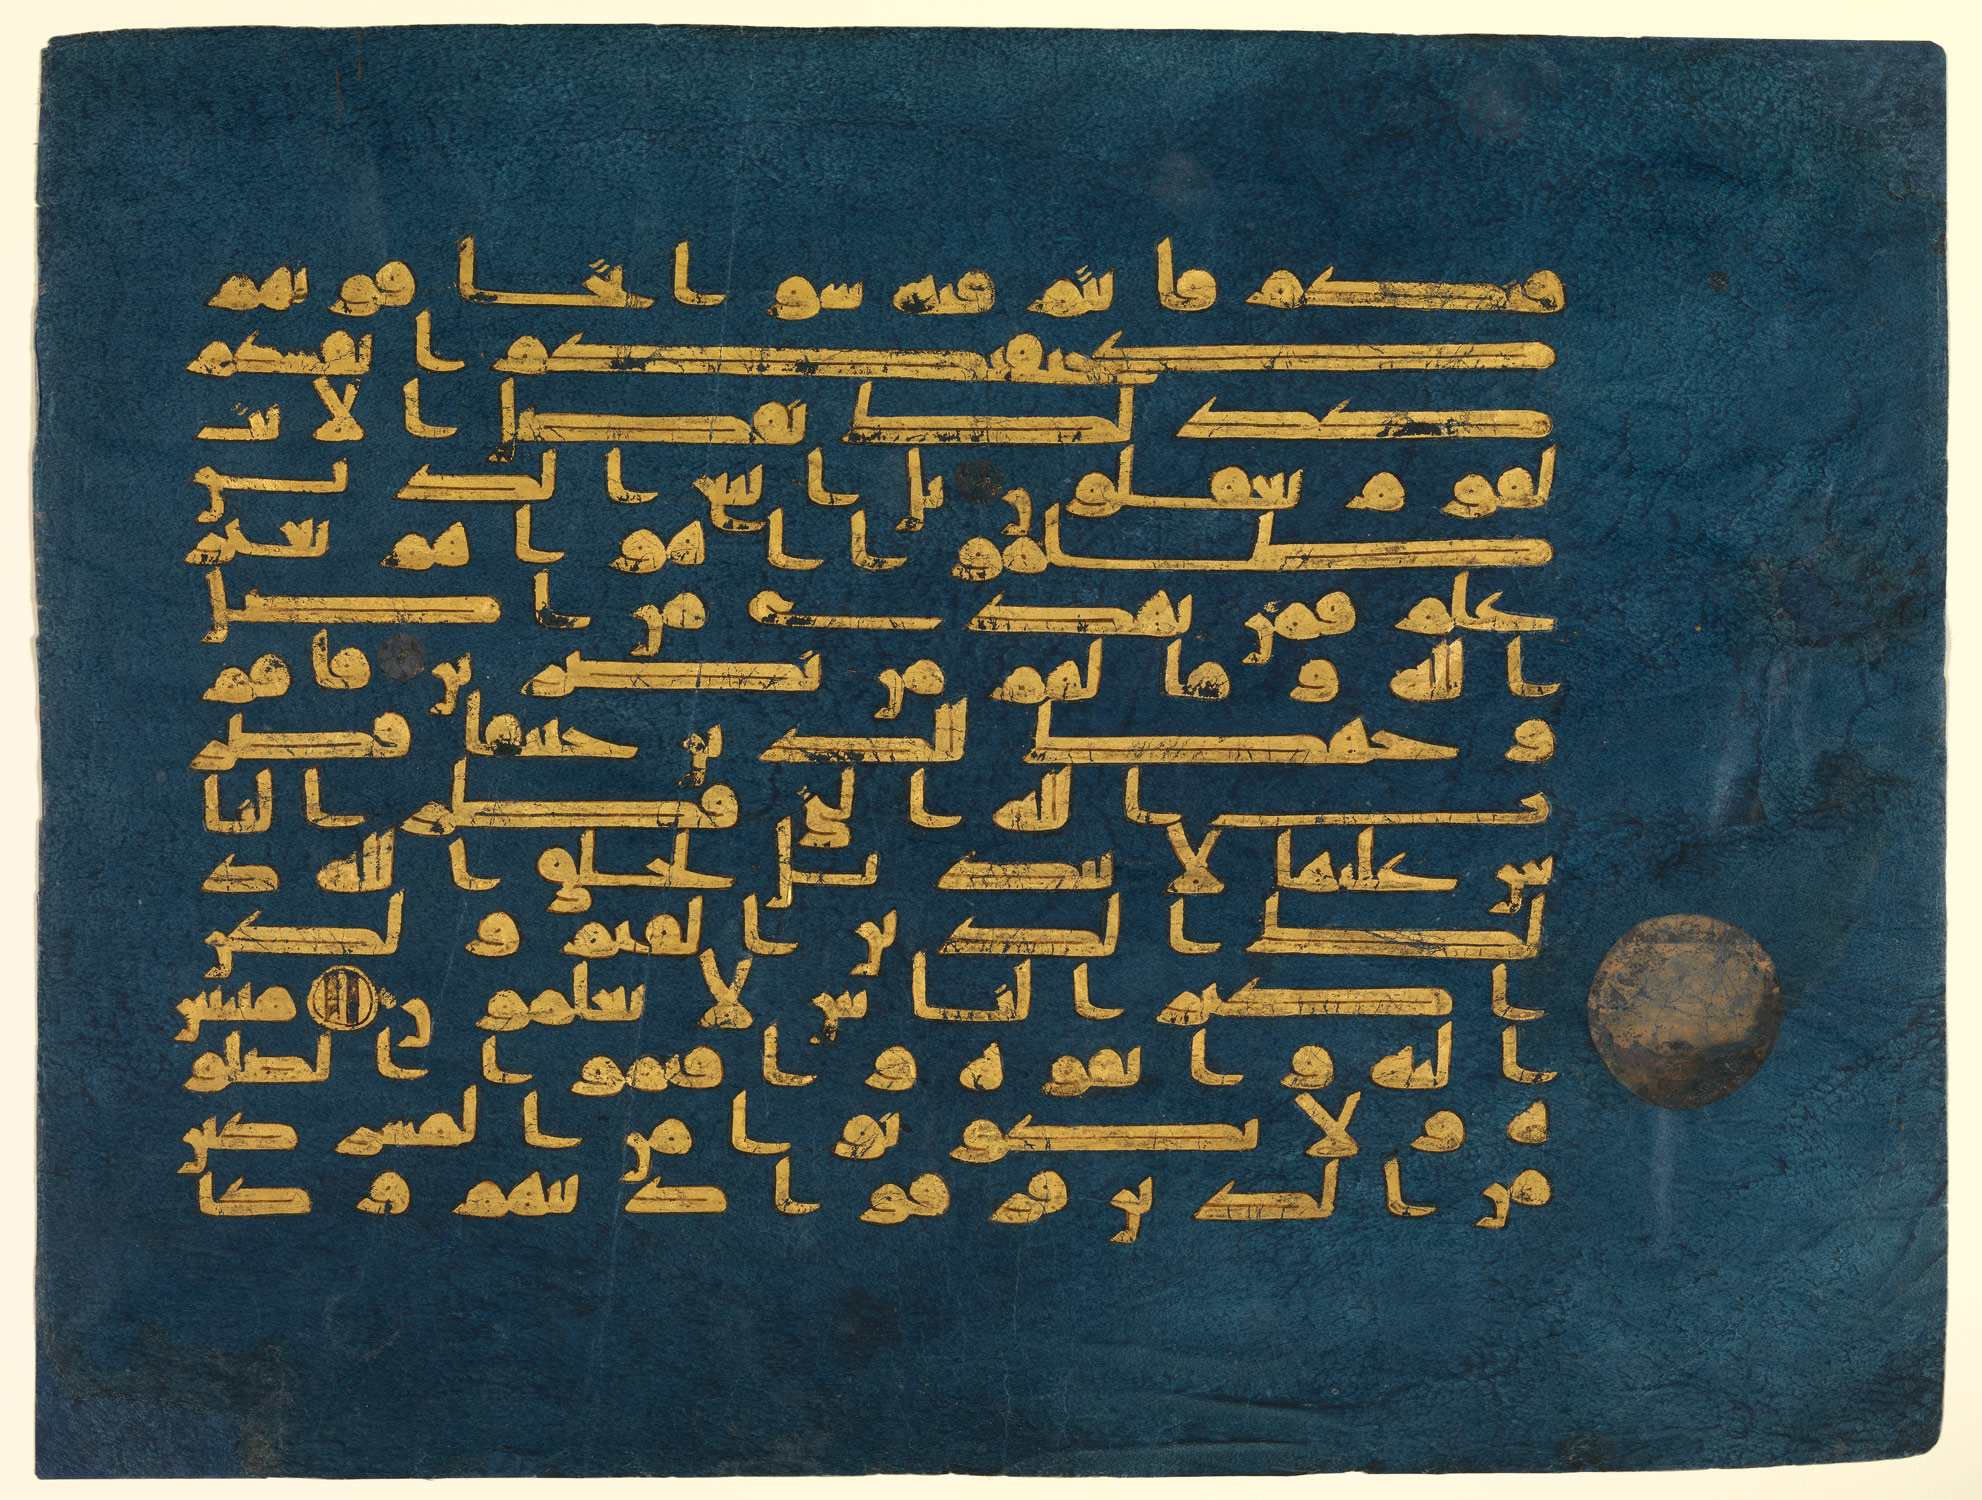 Folio from the Blue Quran